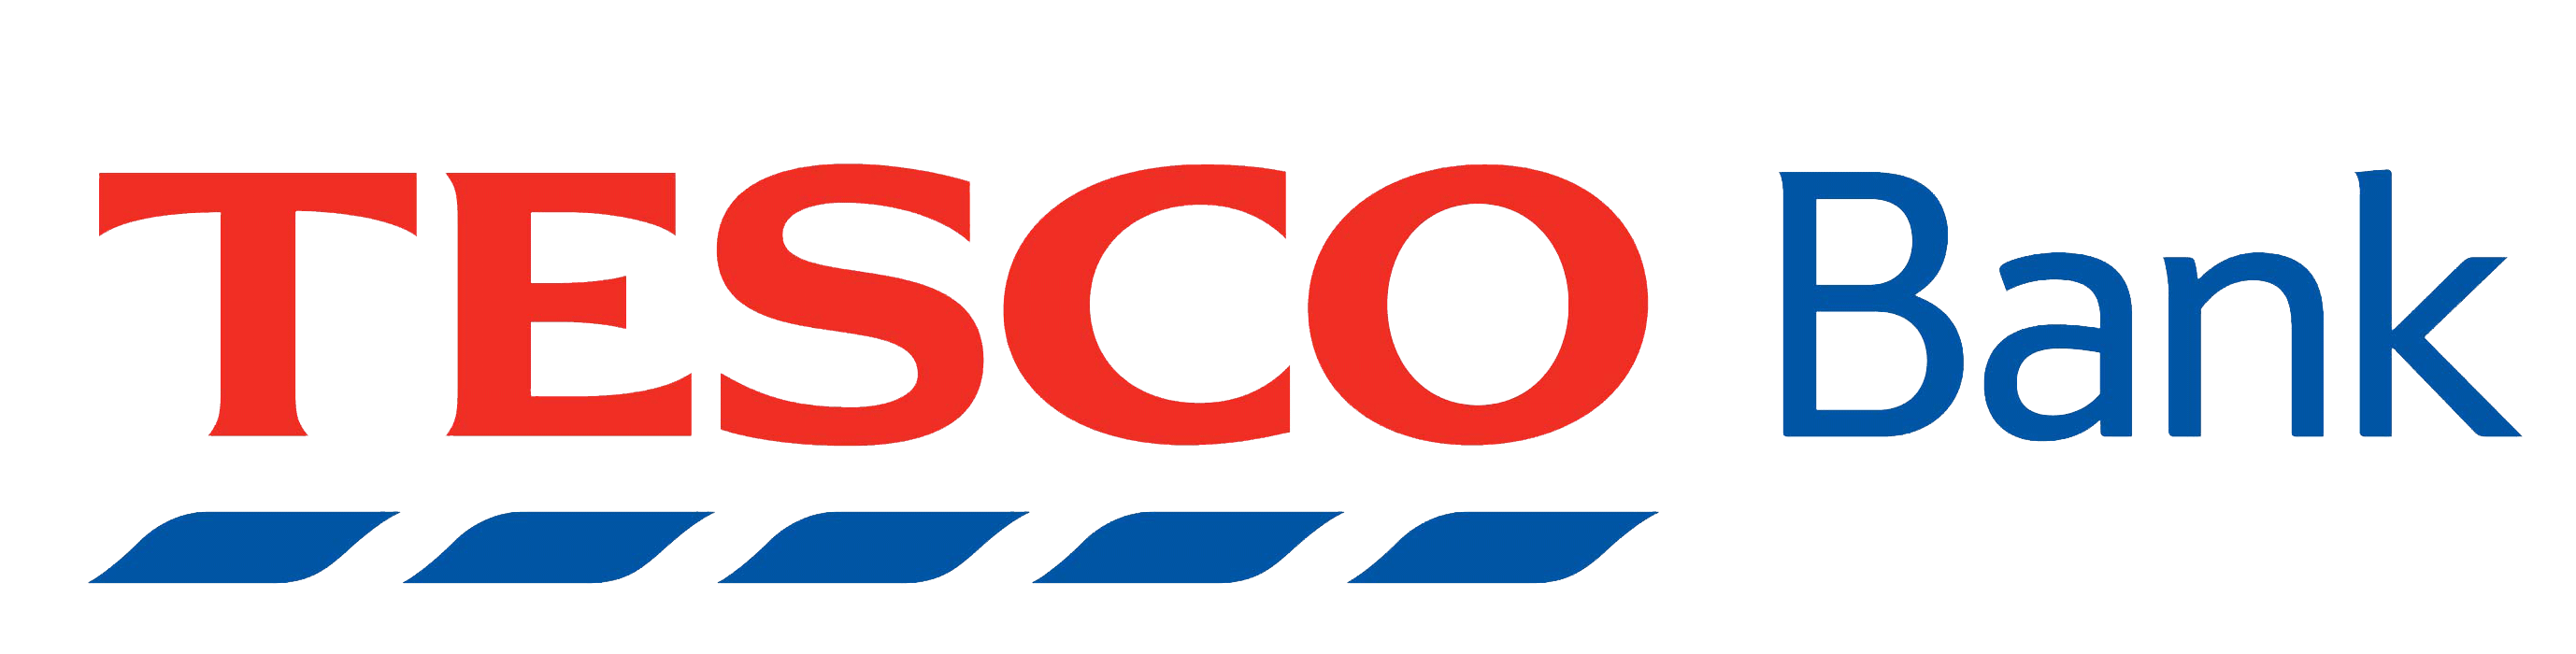 Tesco_bank